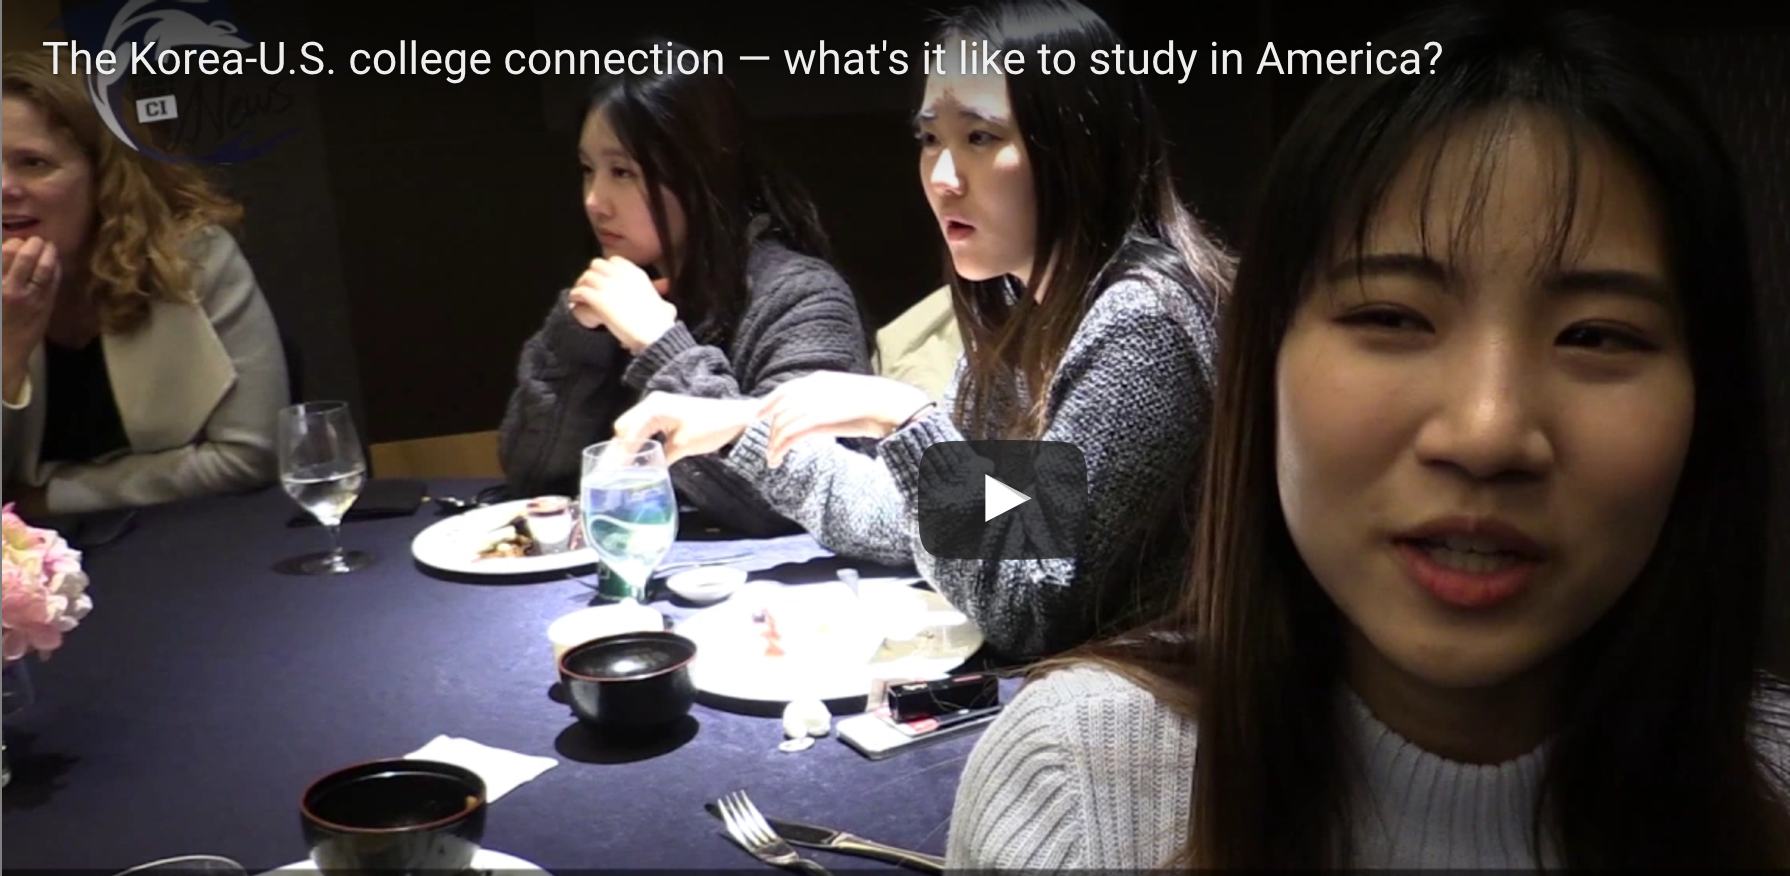 VIDEO: The Korea-U.S. College Connection And VOA's Student Union